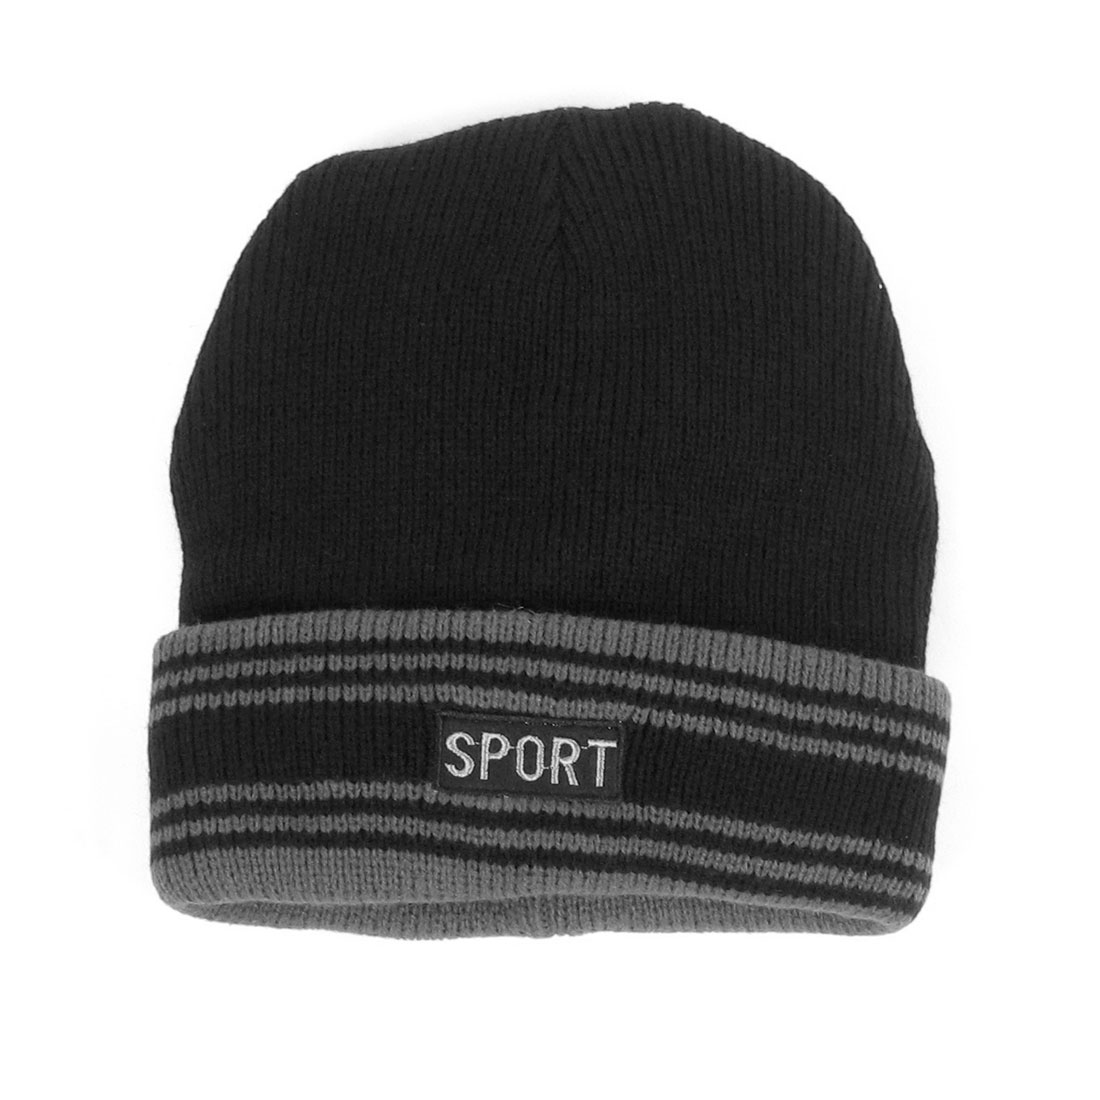 Women Men Black Gray Elastic Acrylic Knit Skiing Skull Beanie Hat Cap